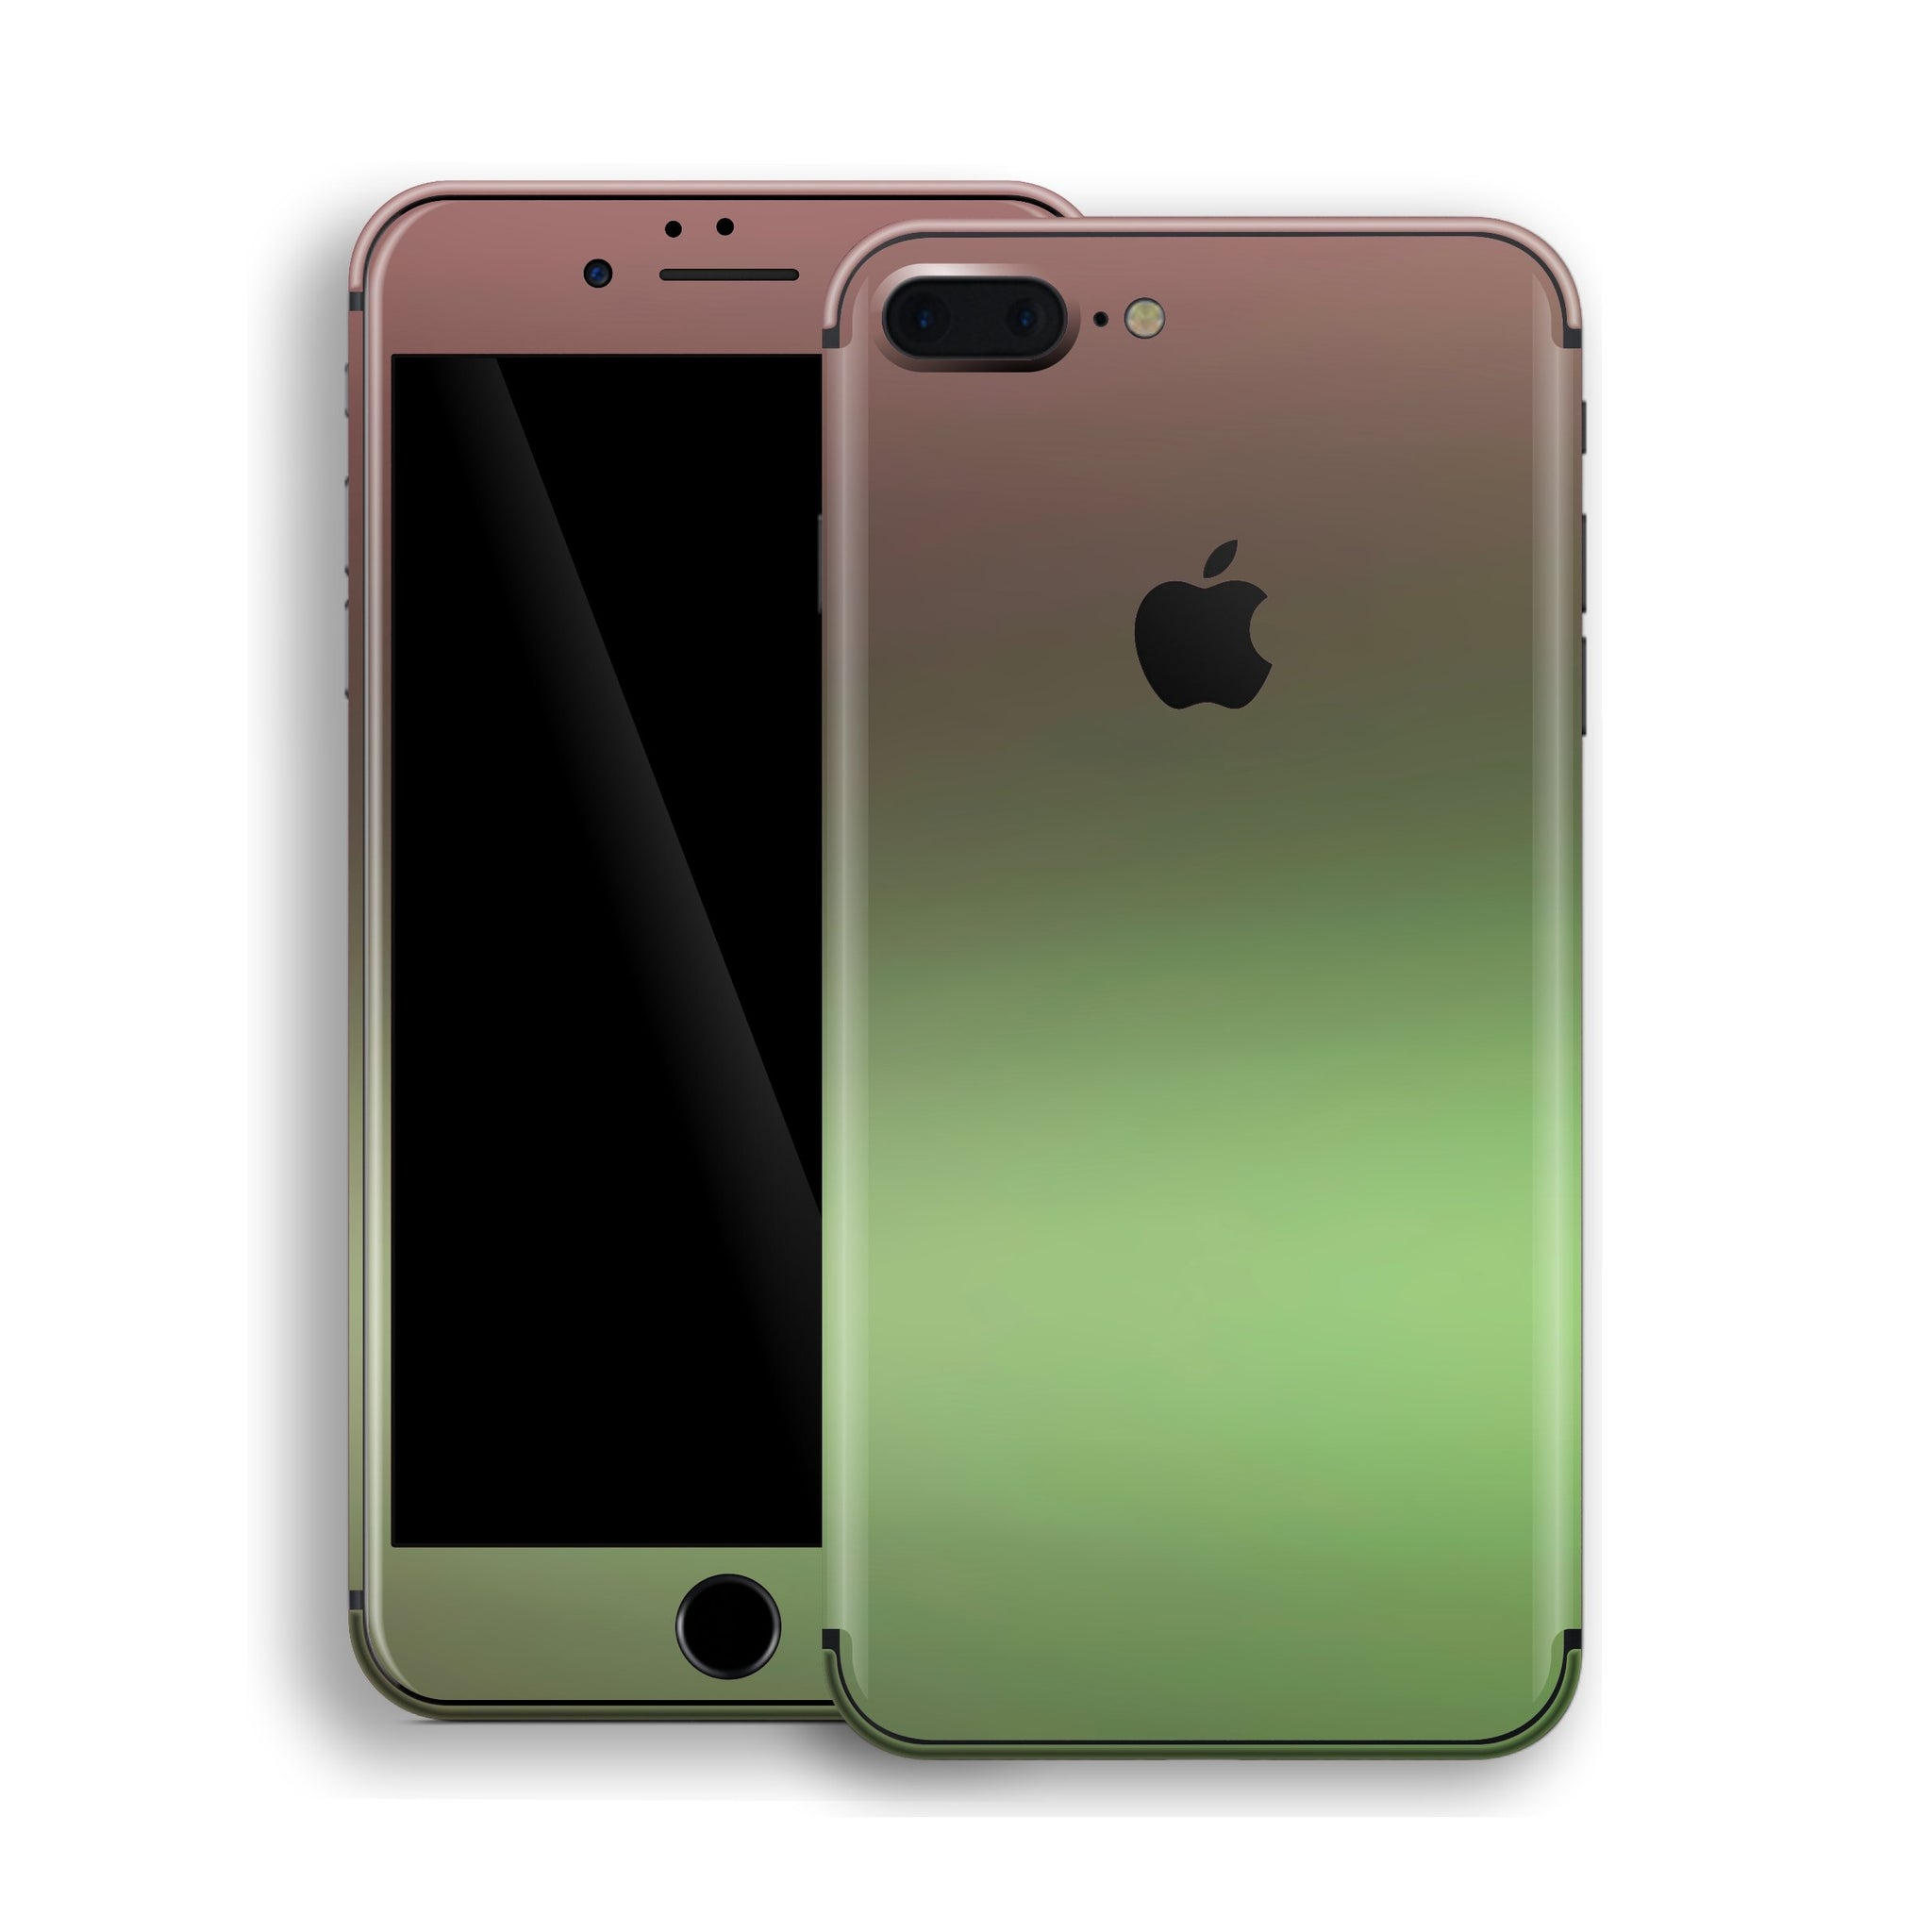 iPhone 8 Plus Chameleon AVOCADO Colour-Changing Skin, Decal, Wrap, Protector, Cover by EasySkinz | EasySkinz.com